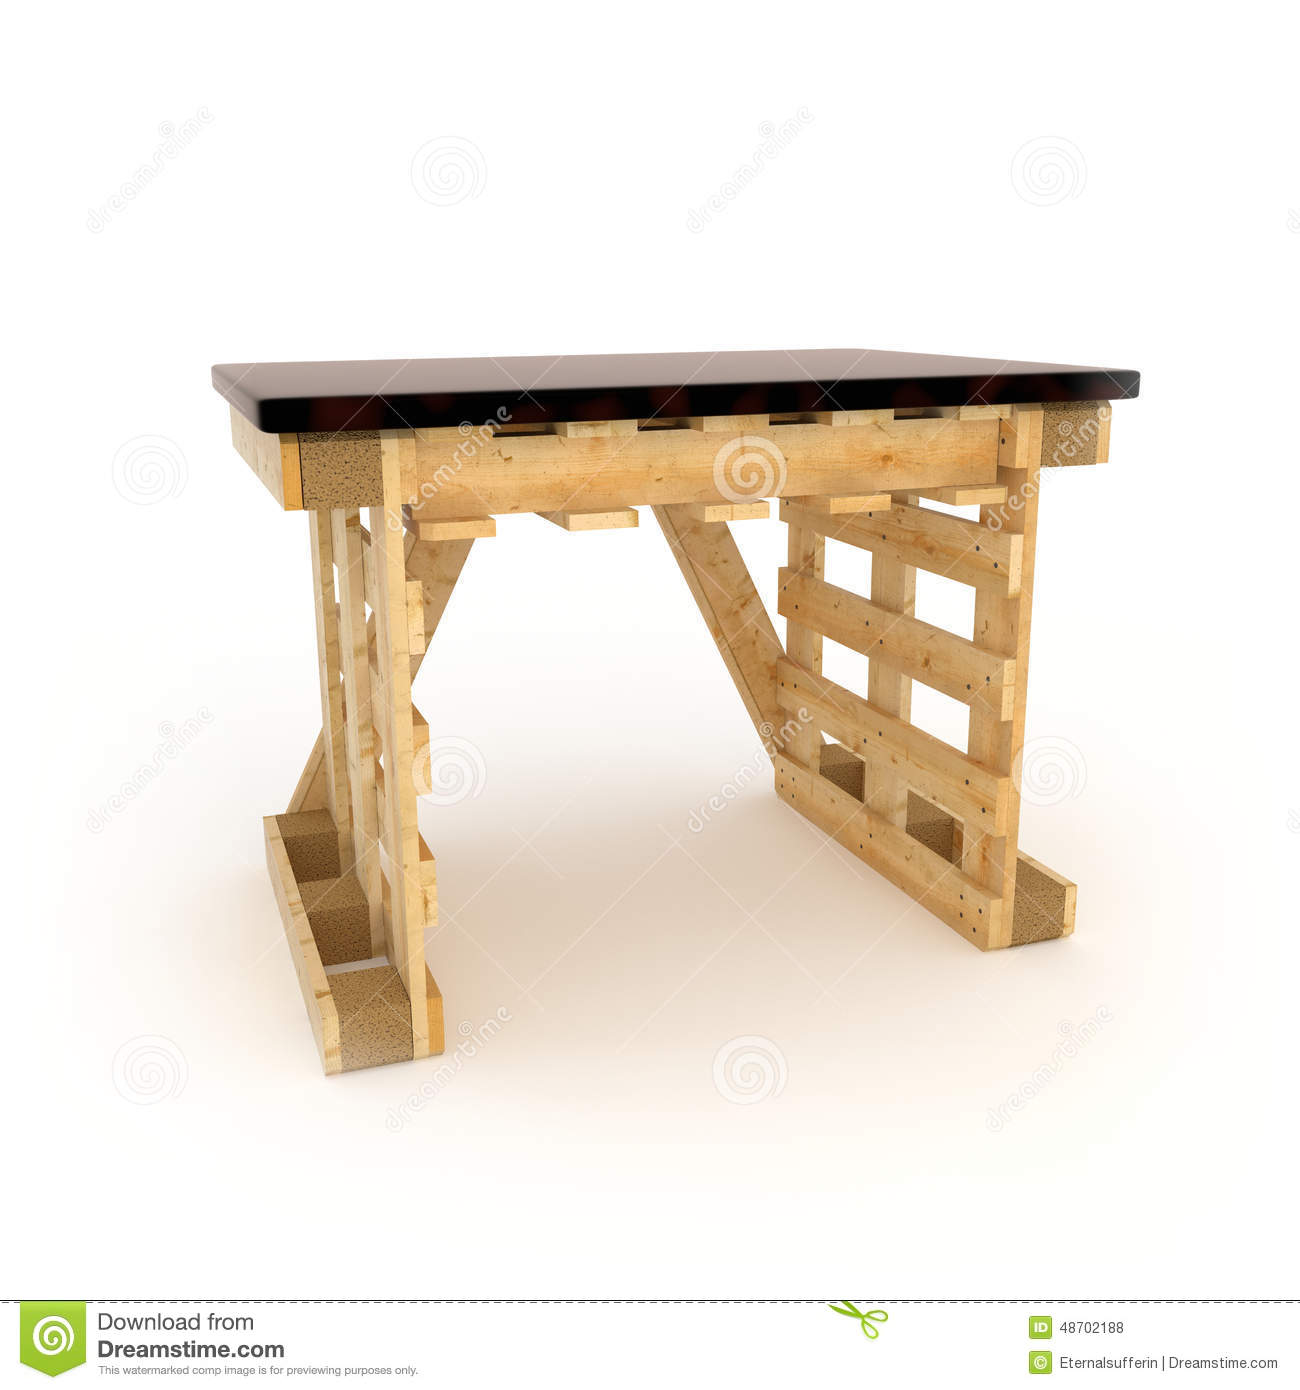 Furniture Made With Wooden Pallets Stock Photo Image Of Wood  # Muebles Pailets